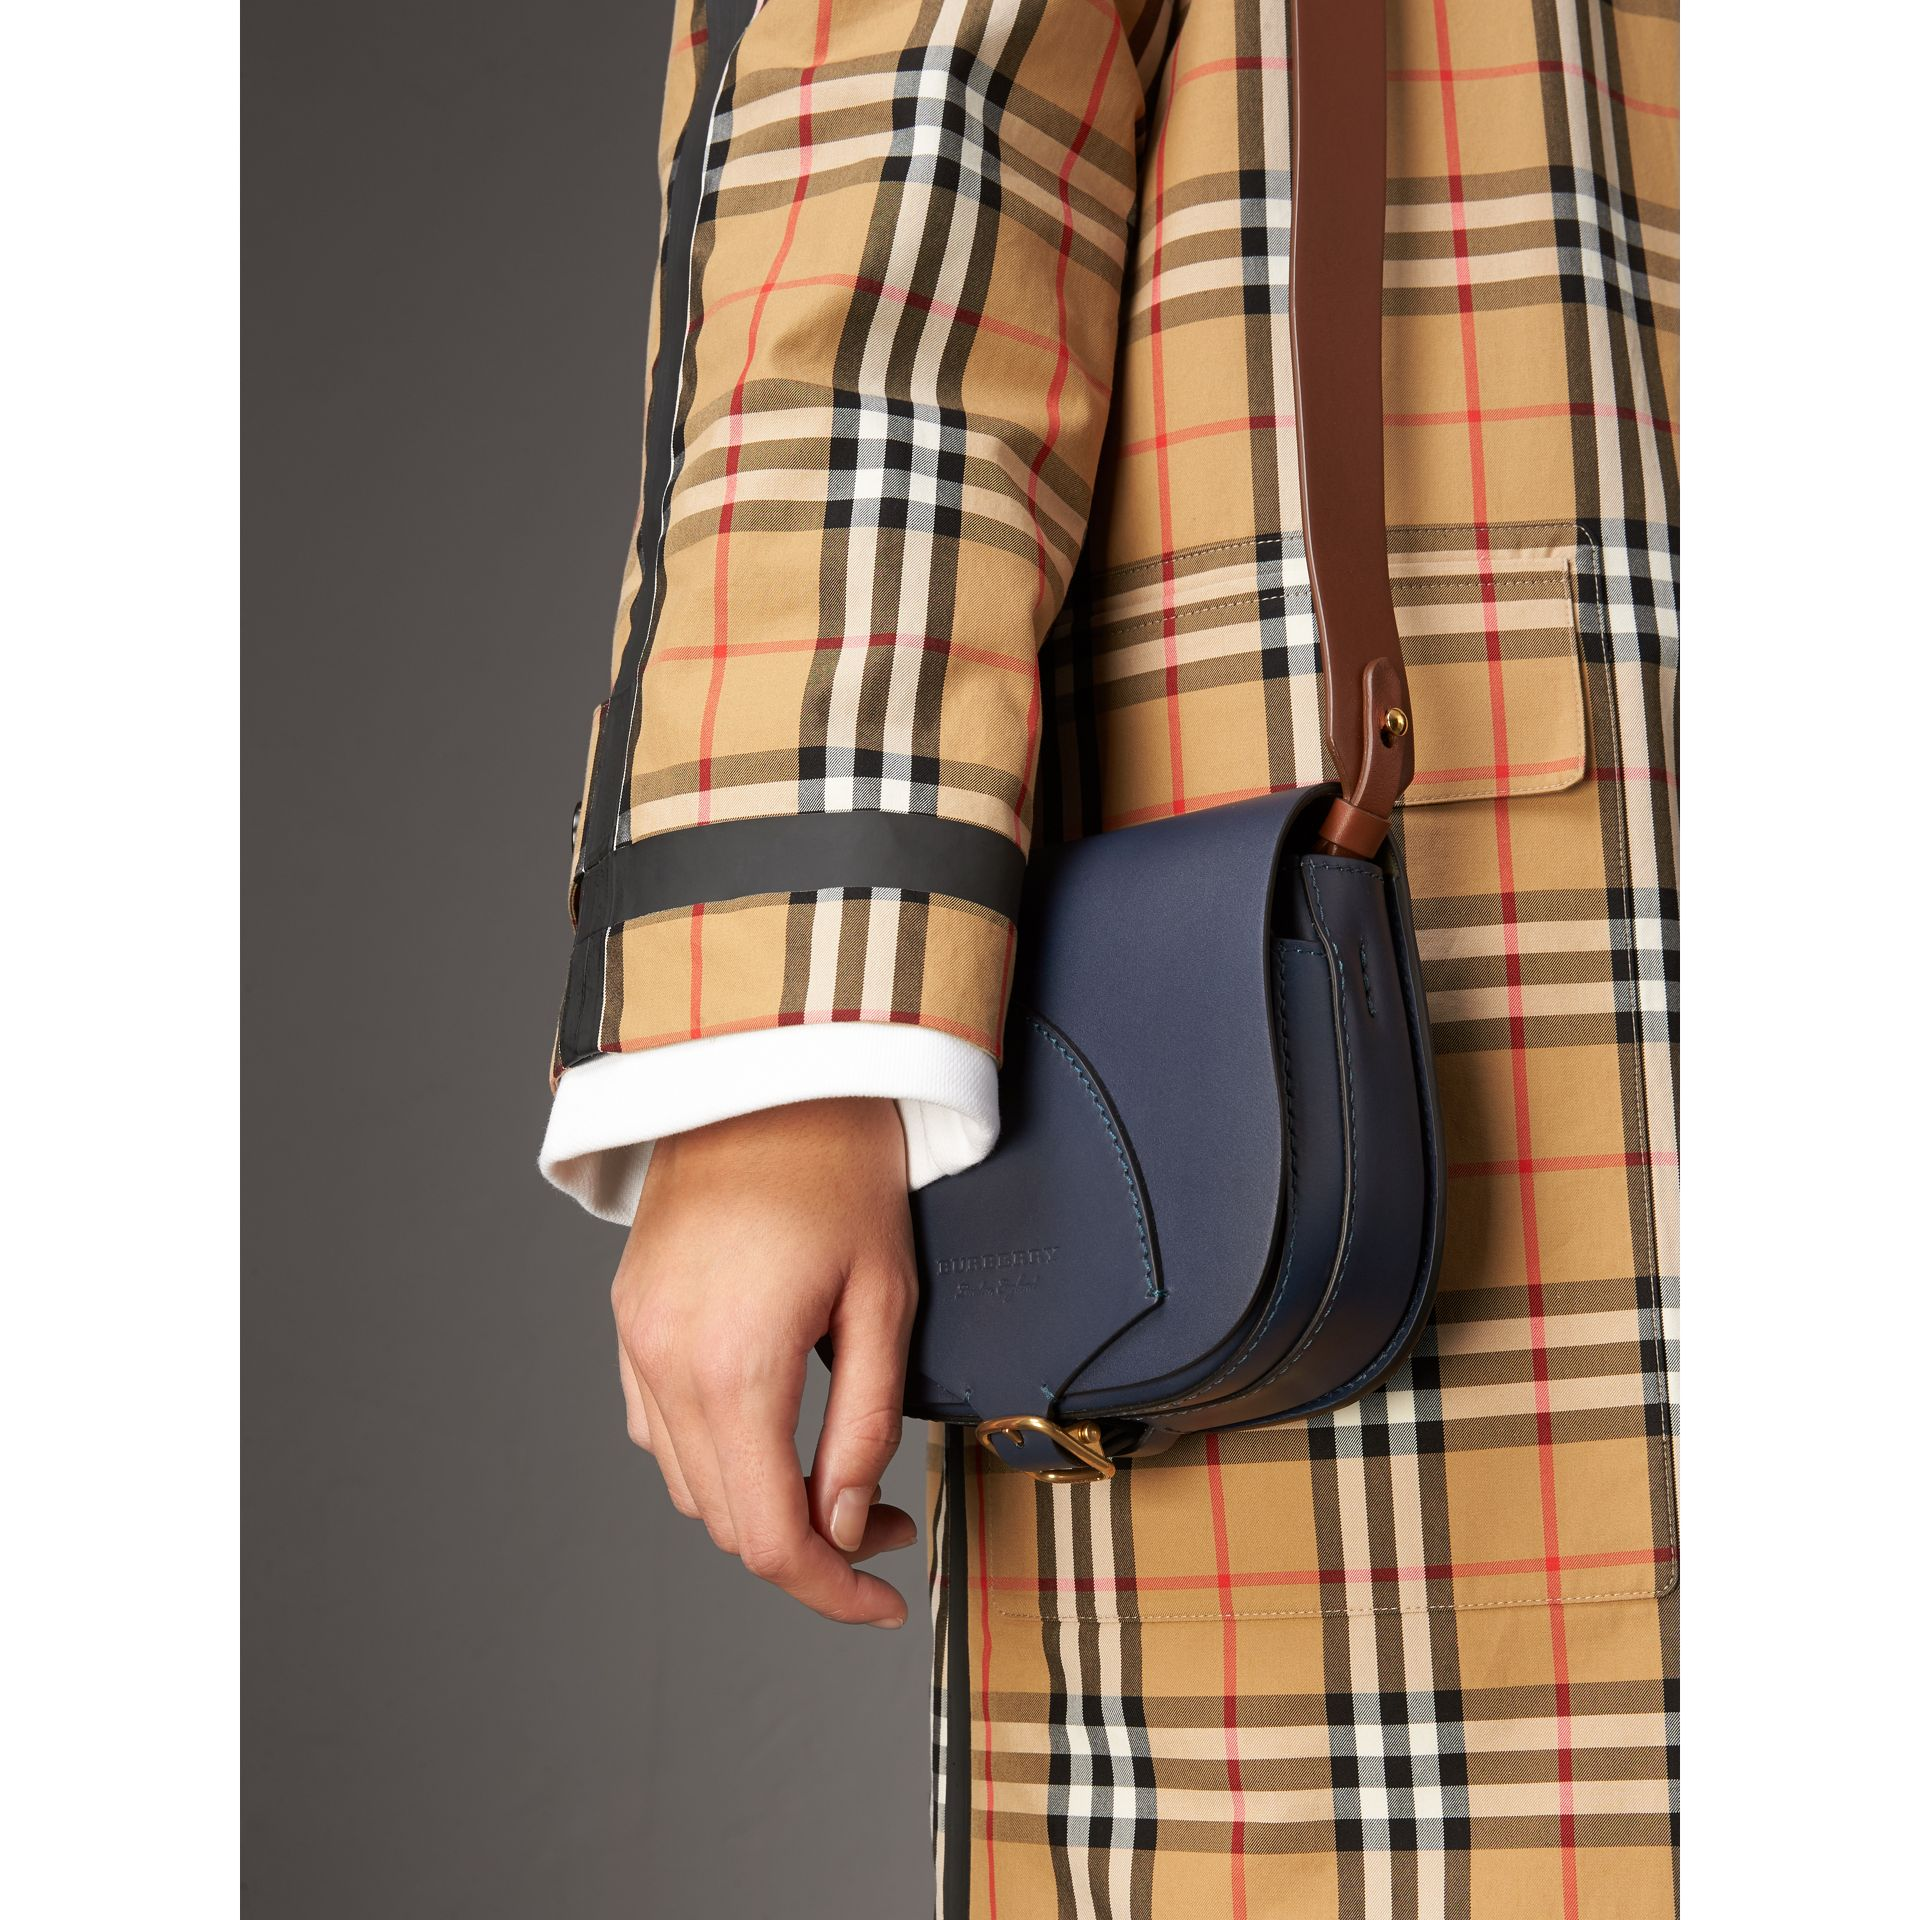 Sac The Satchel en cuir (Indigo) - Femme | Burberry - photo de la galerie 3